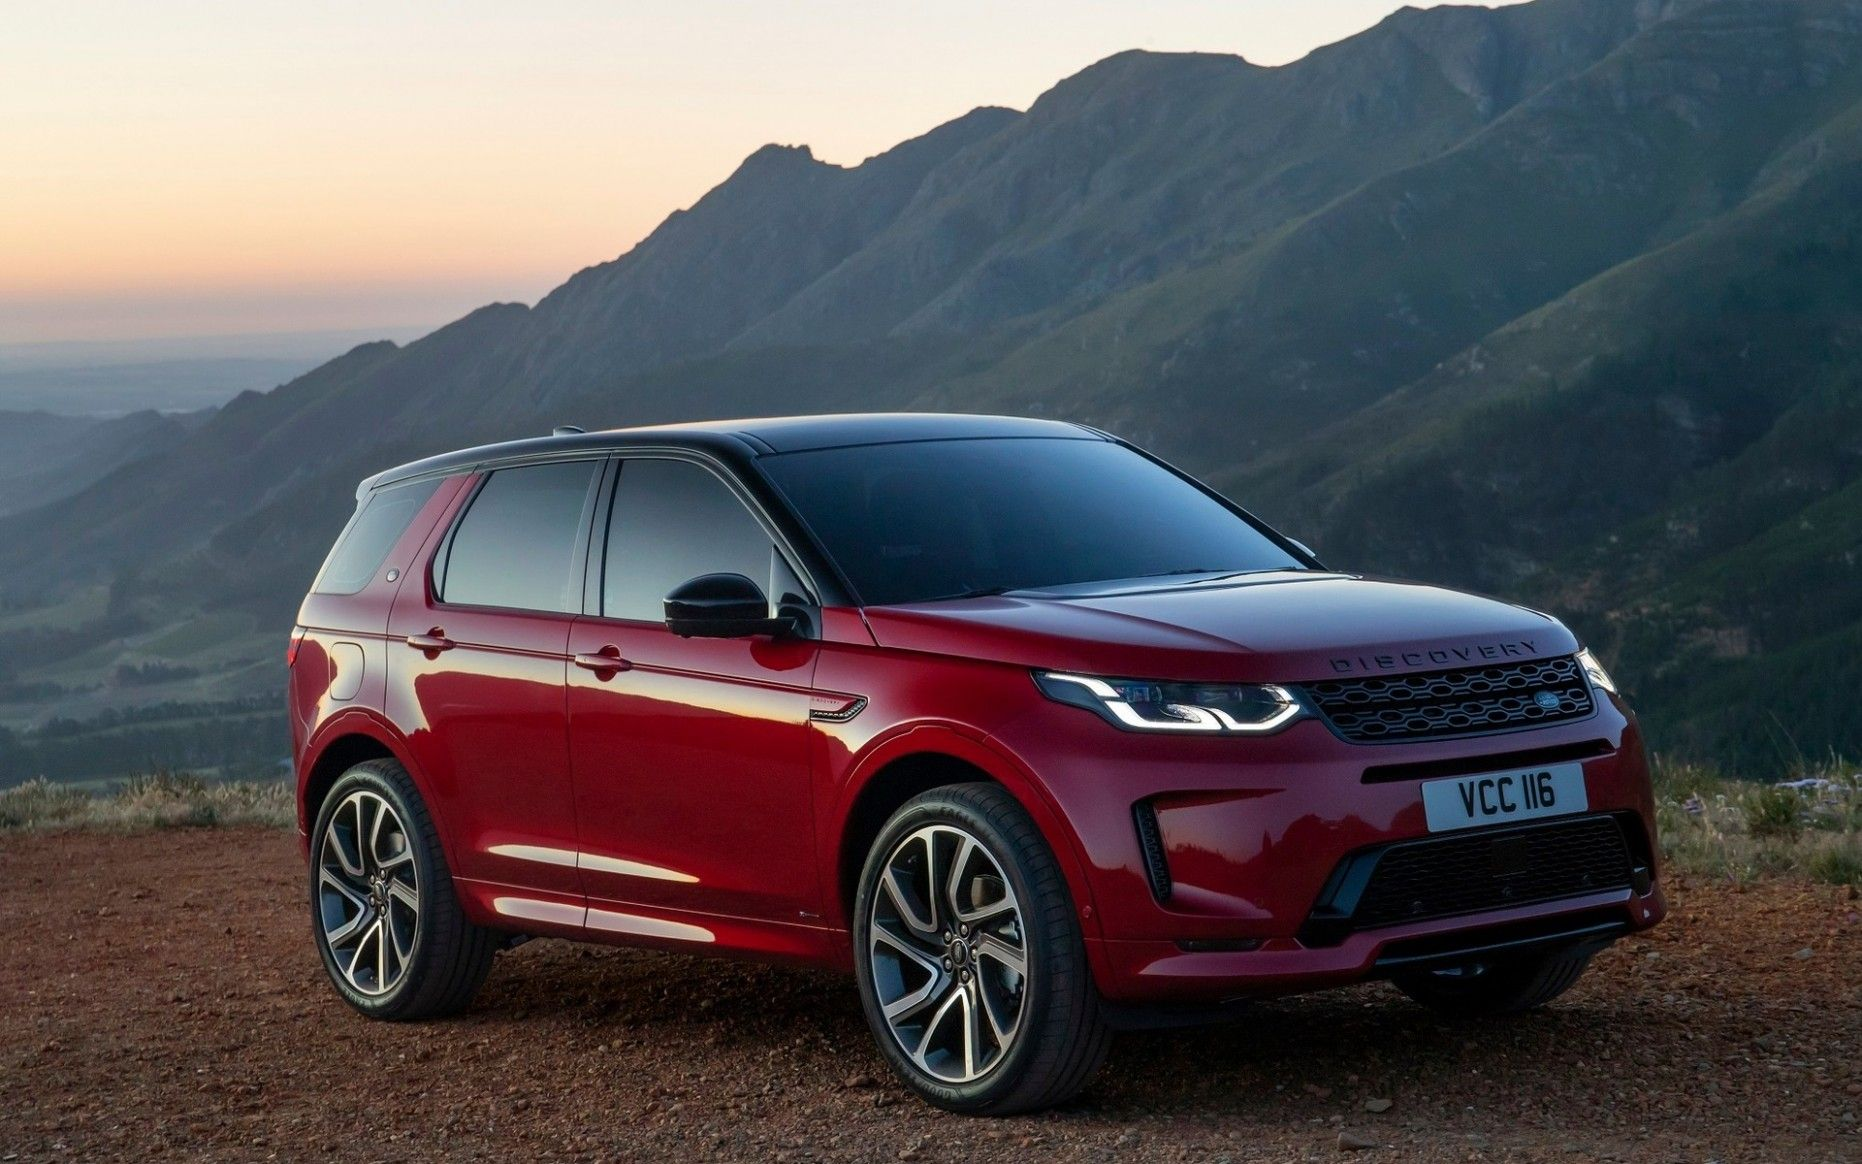 2021 Land Rover Discovery Price and Review